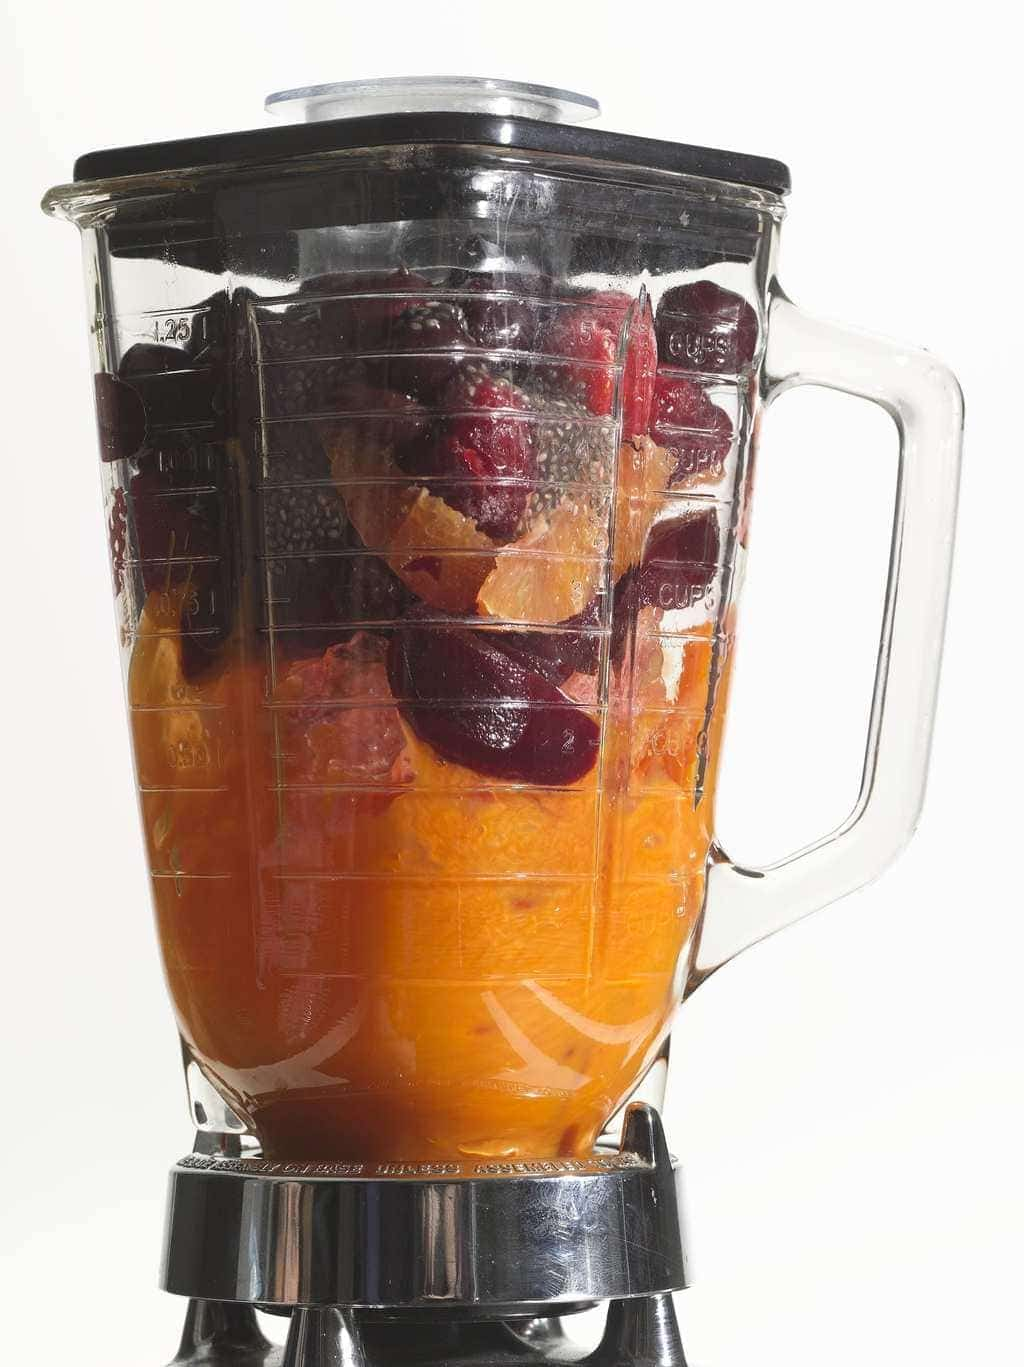 Healthy Smoothie in a blender